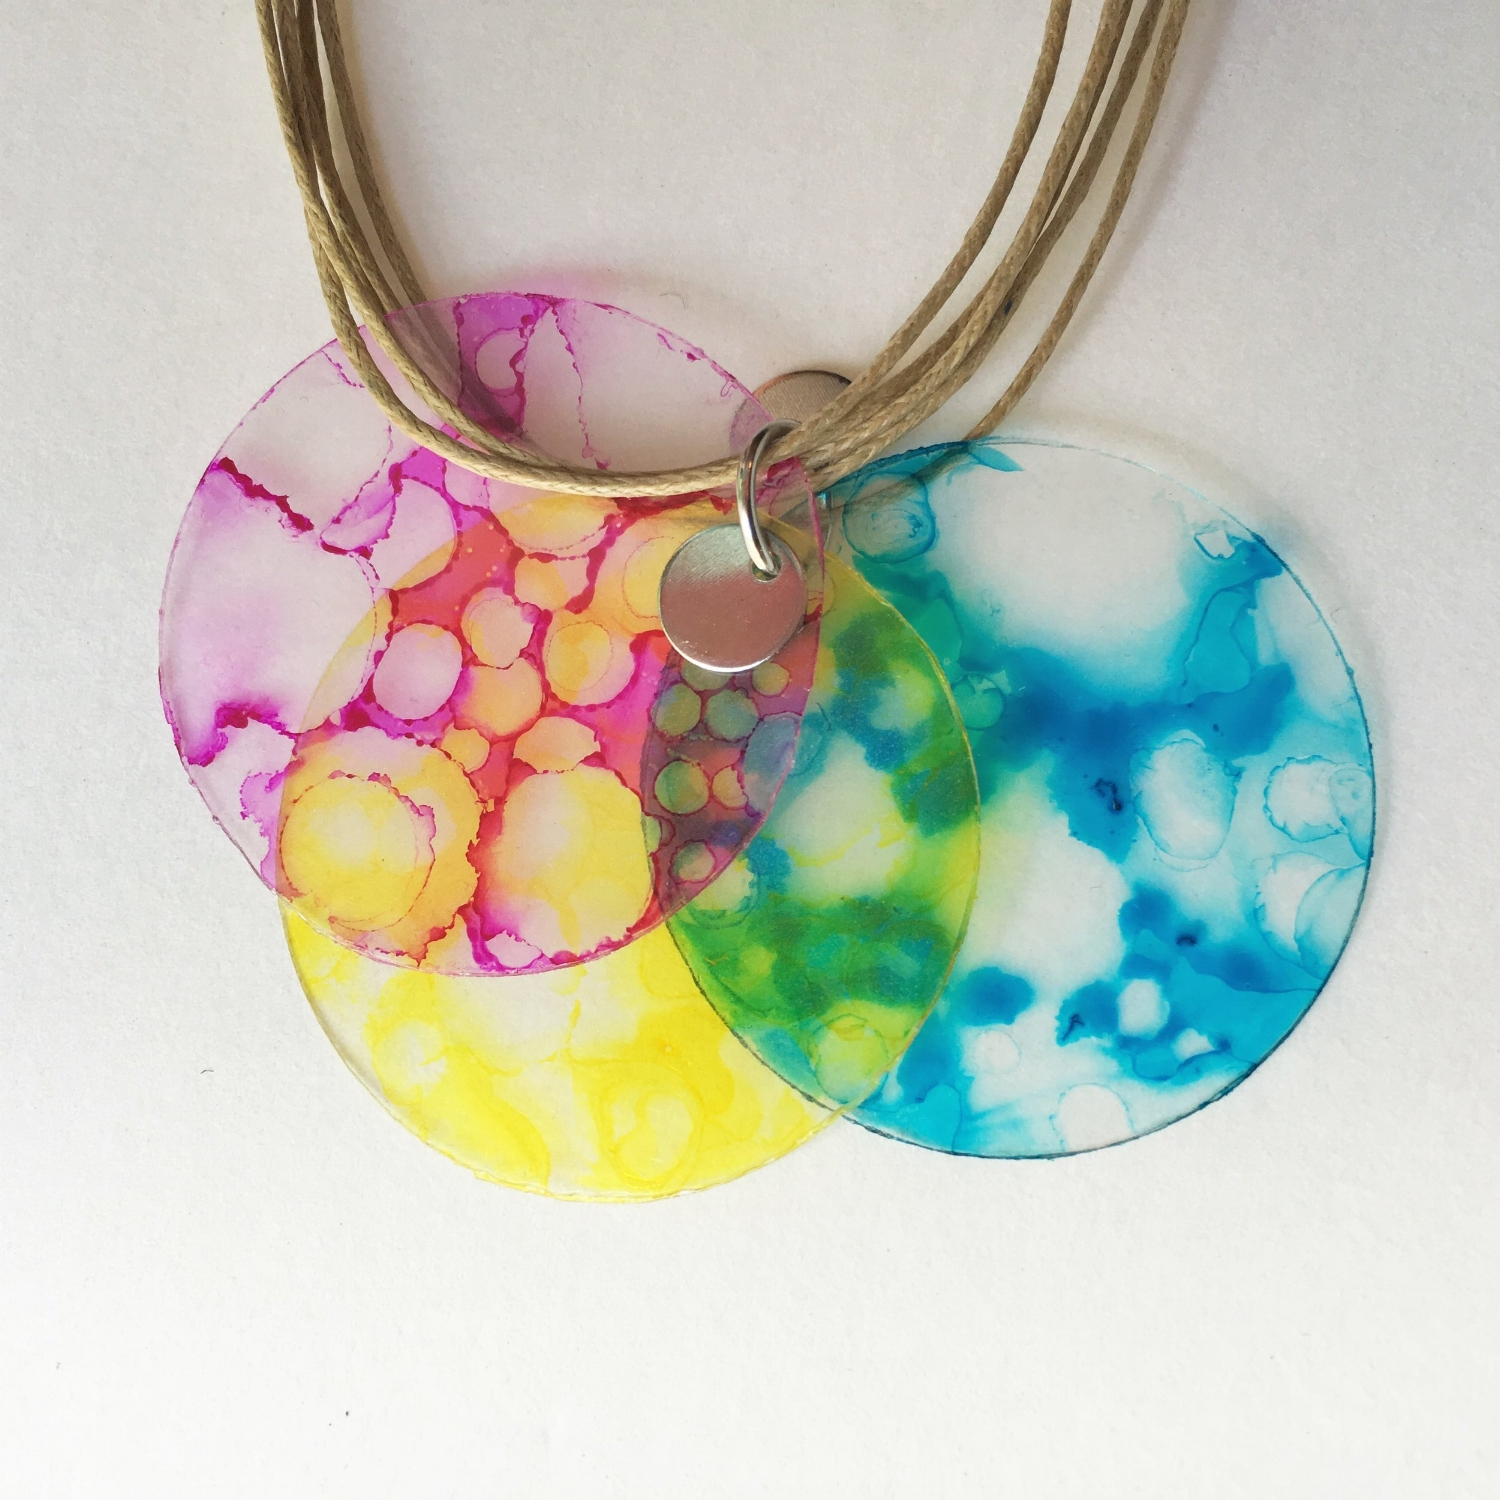 upcycled plastic necklaces!